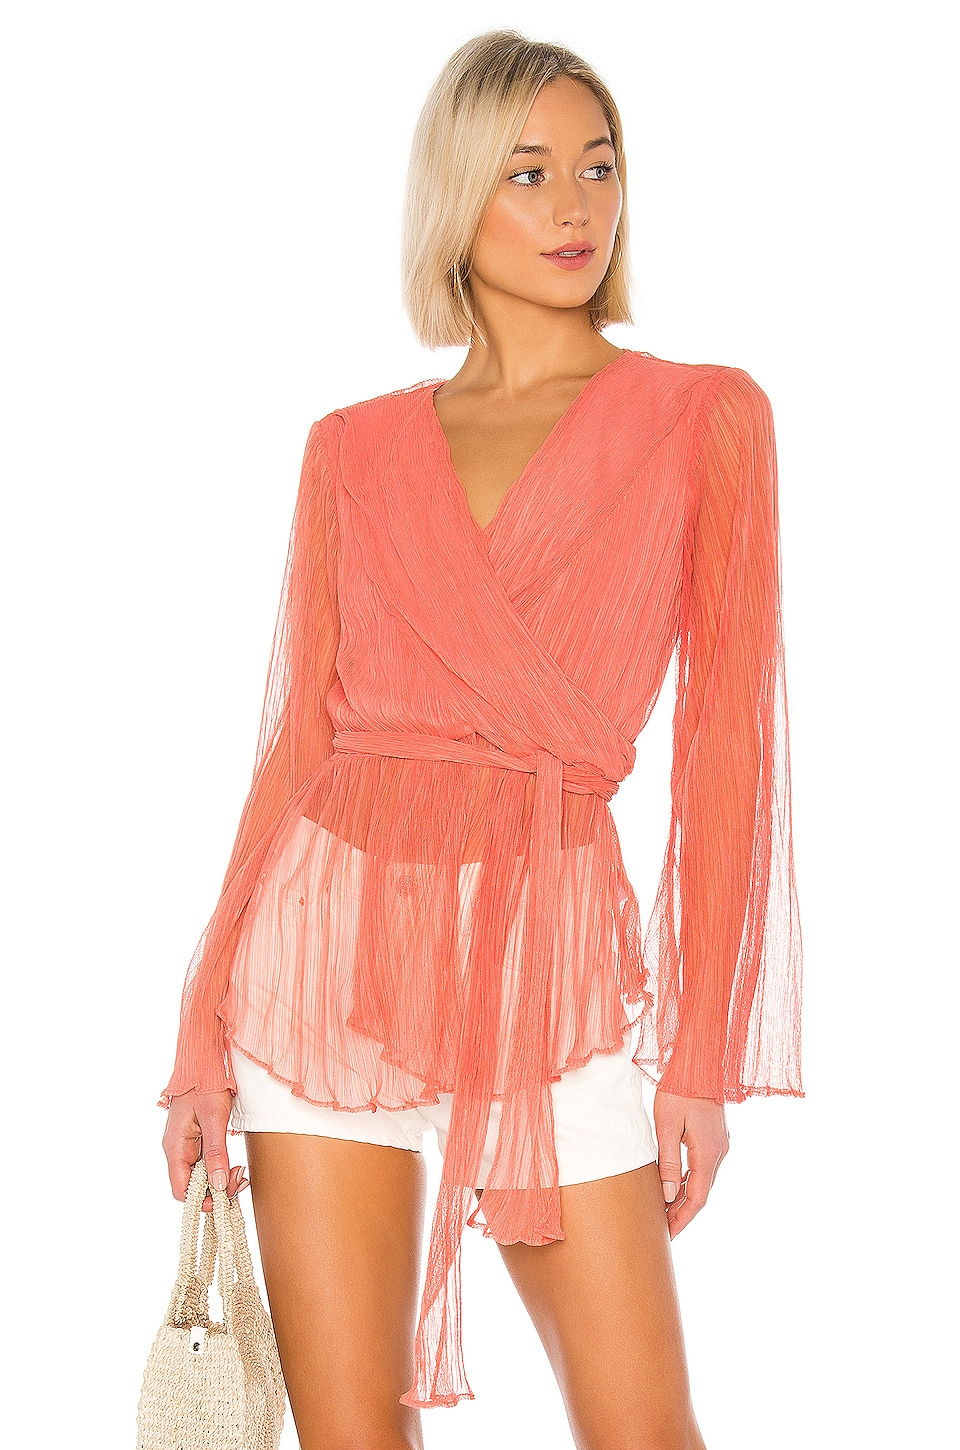 House of Harlow 1960 X REVOLVE Meriem Blouse in Coral